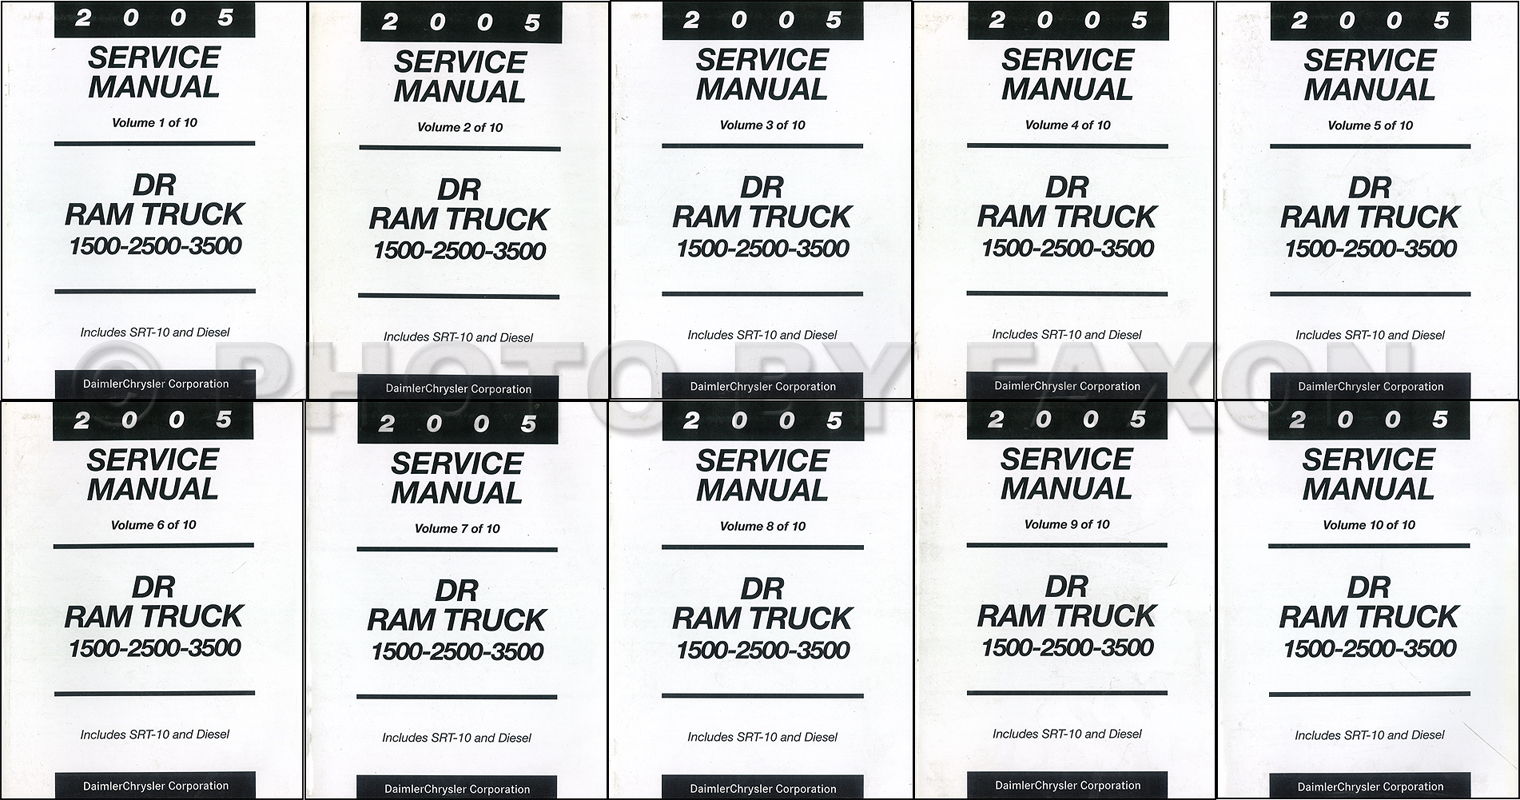 2005 Dodge Ram Truck Wiring Diagram Manual Original 1958 Repair Shop 10 Vol Set Factory Reprint 1500 2500 3500